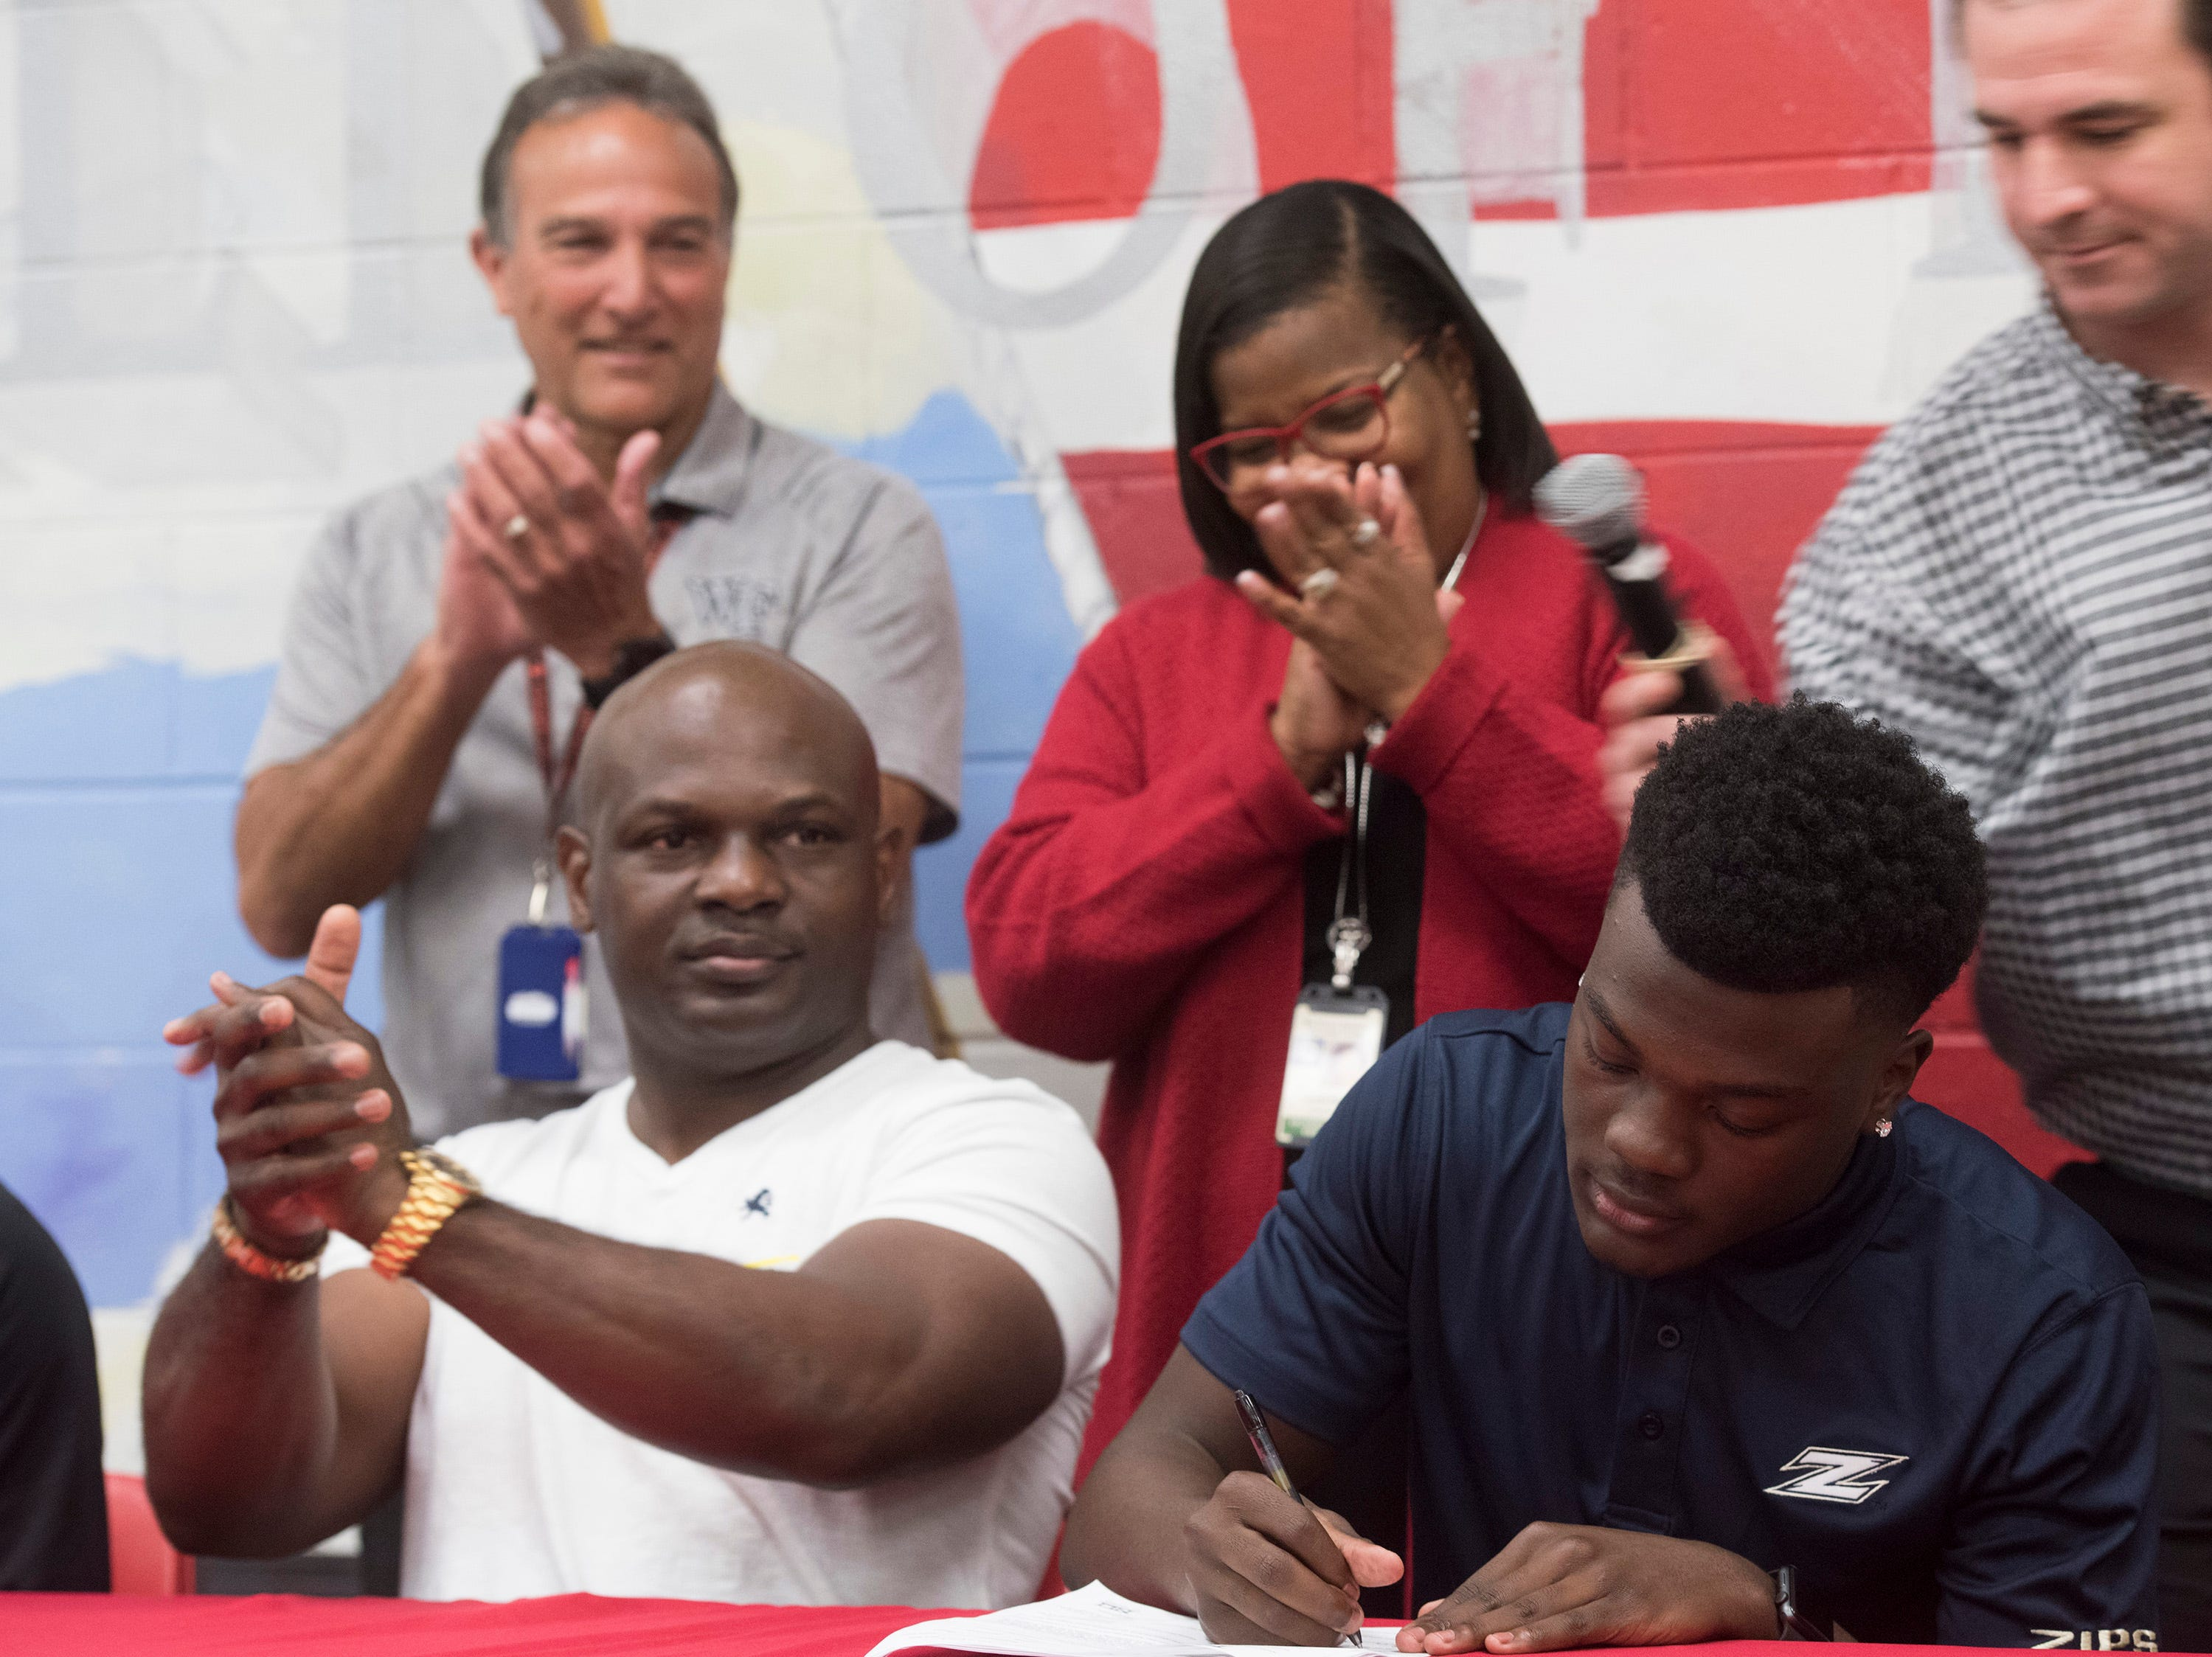 West Florida High School's Keyshawn Swanson commits to the University of Akron on National Signing Day on Wednesday Feb.6, 2019.